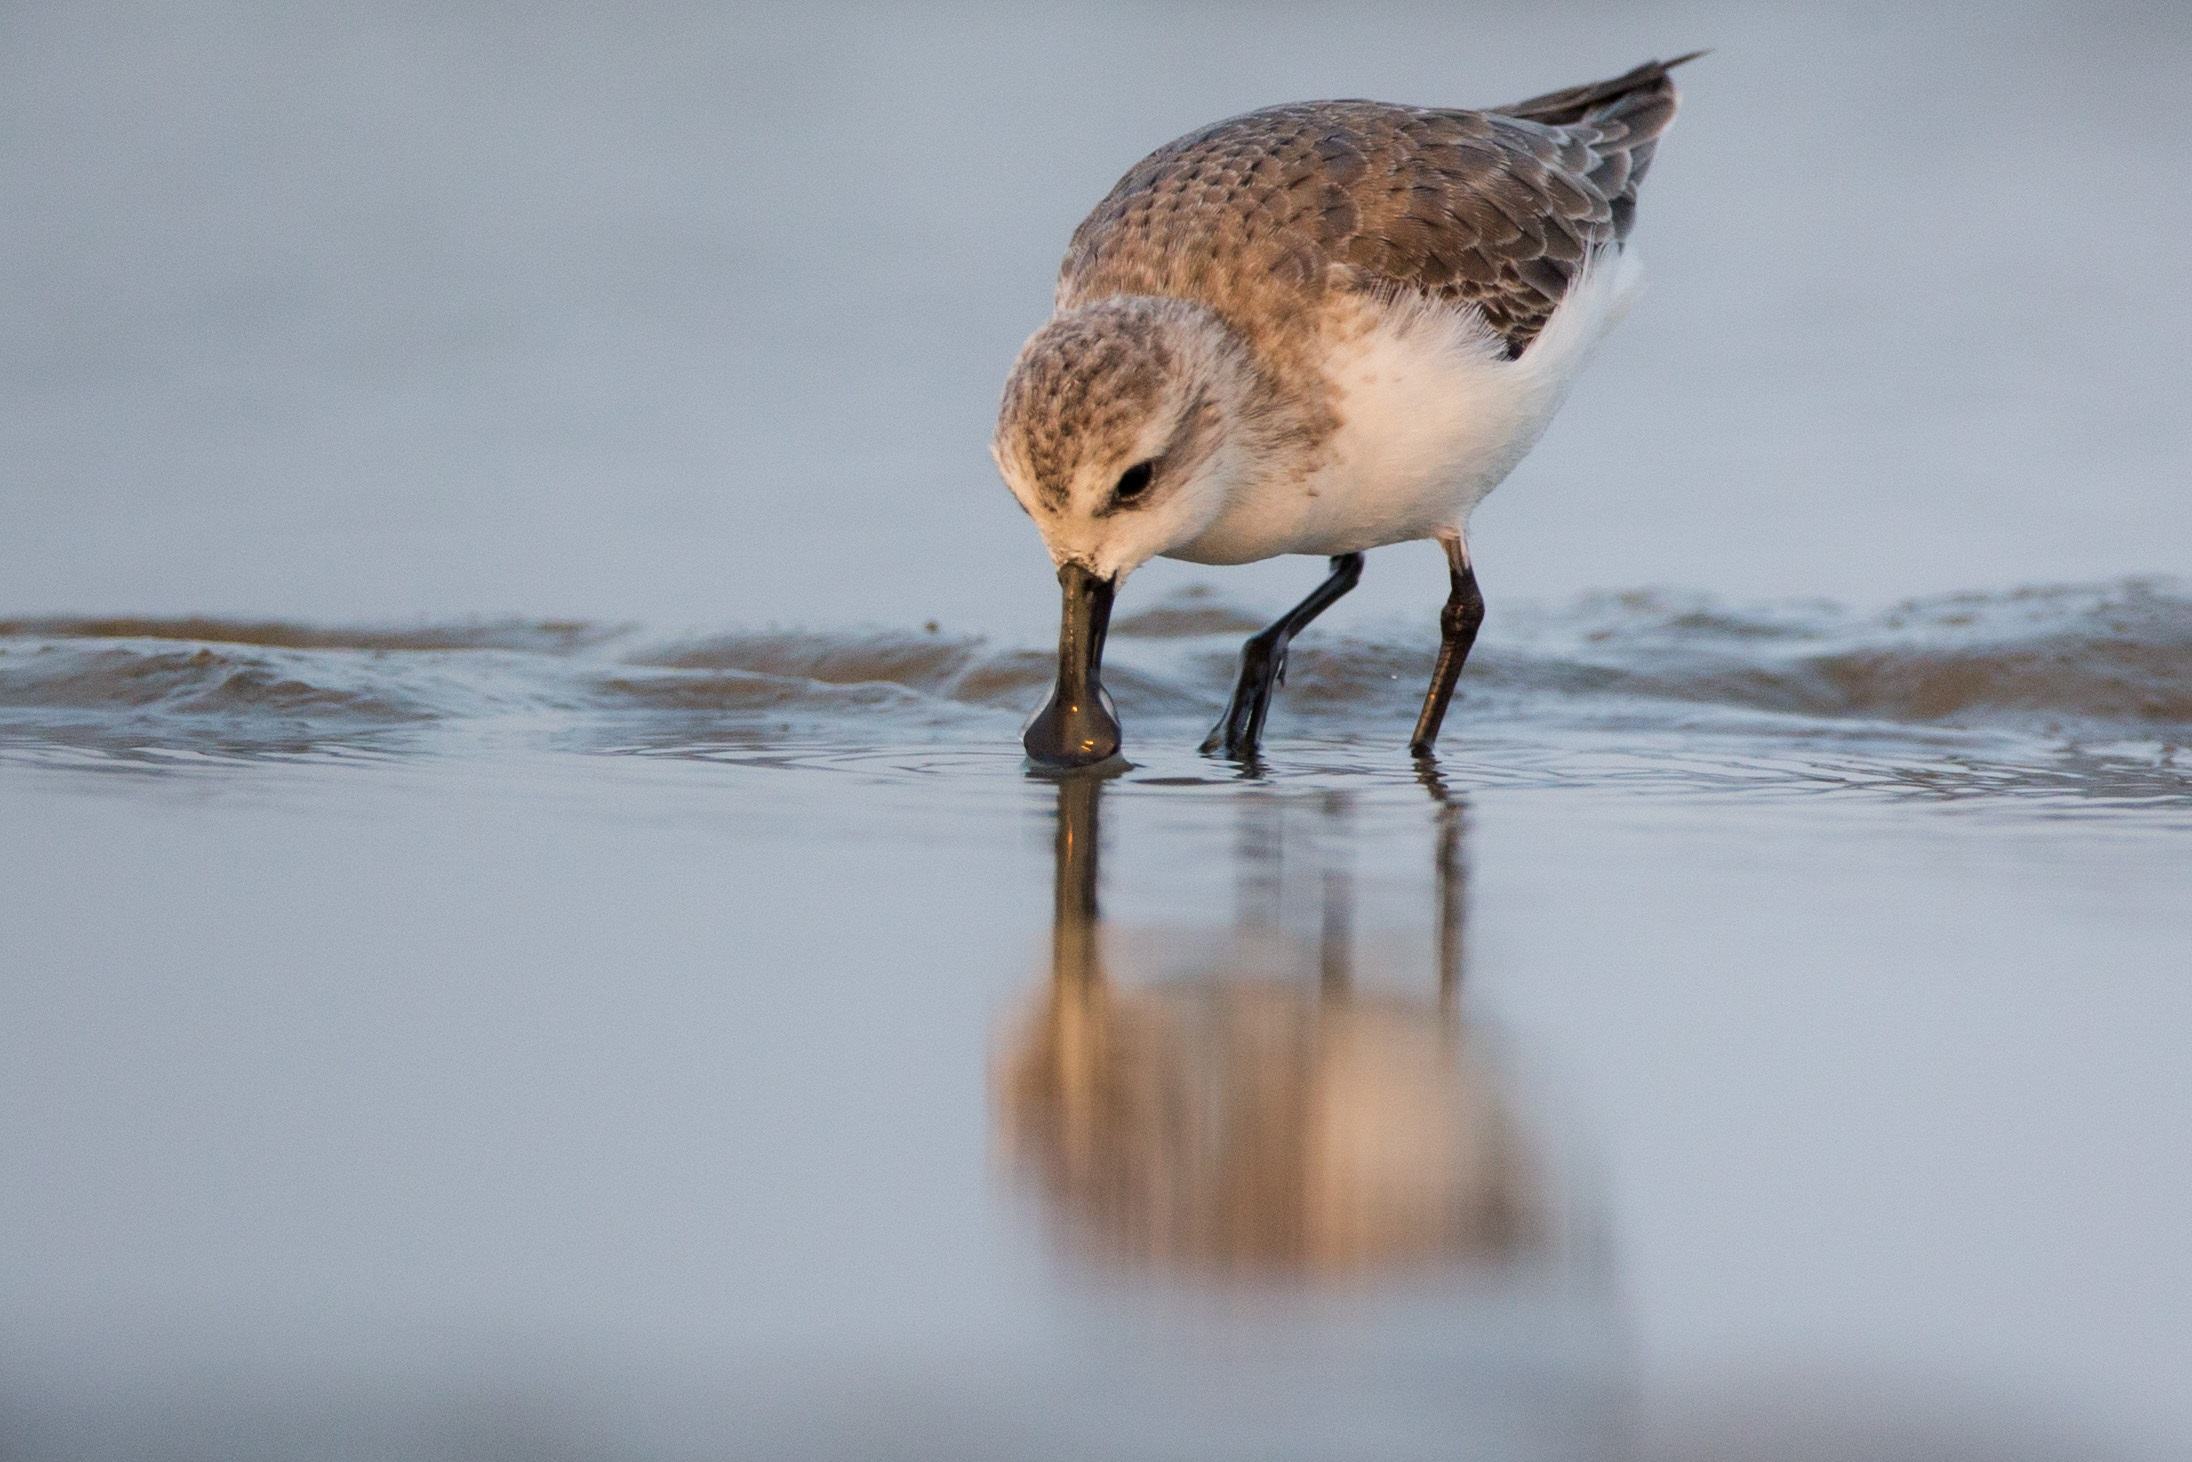 New study quantifies impact of hunting on migratory shorebird populations